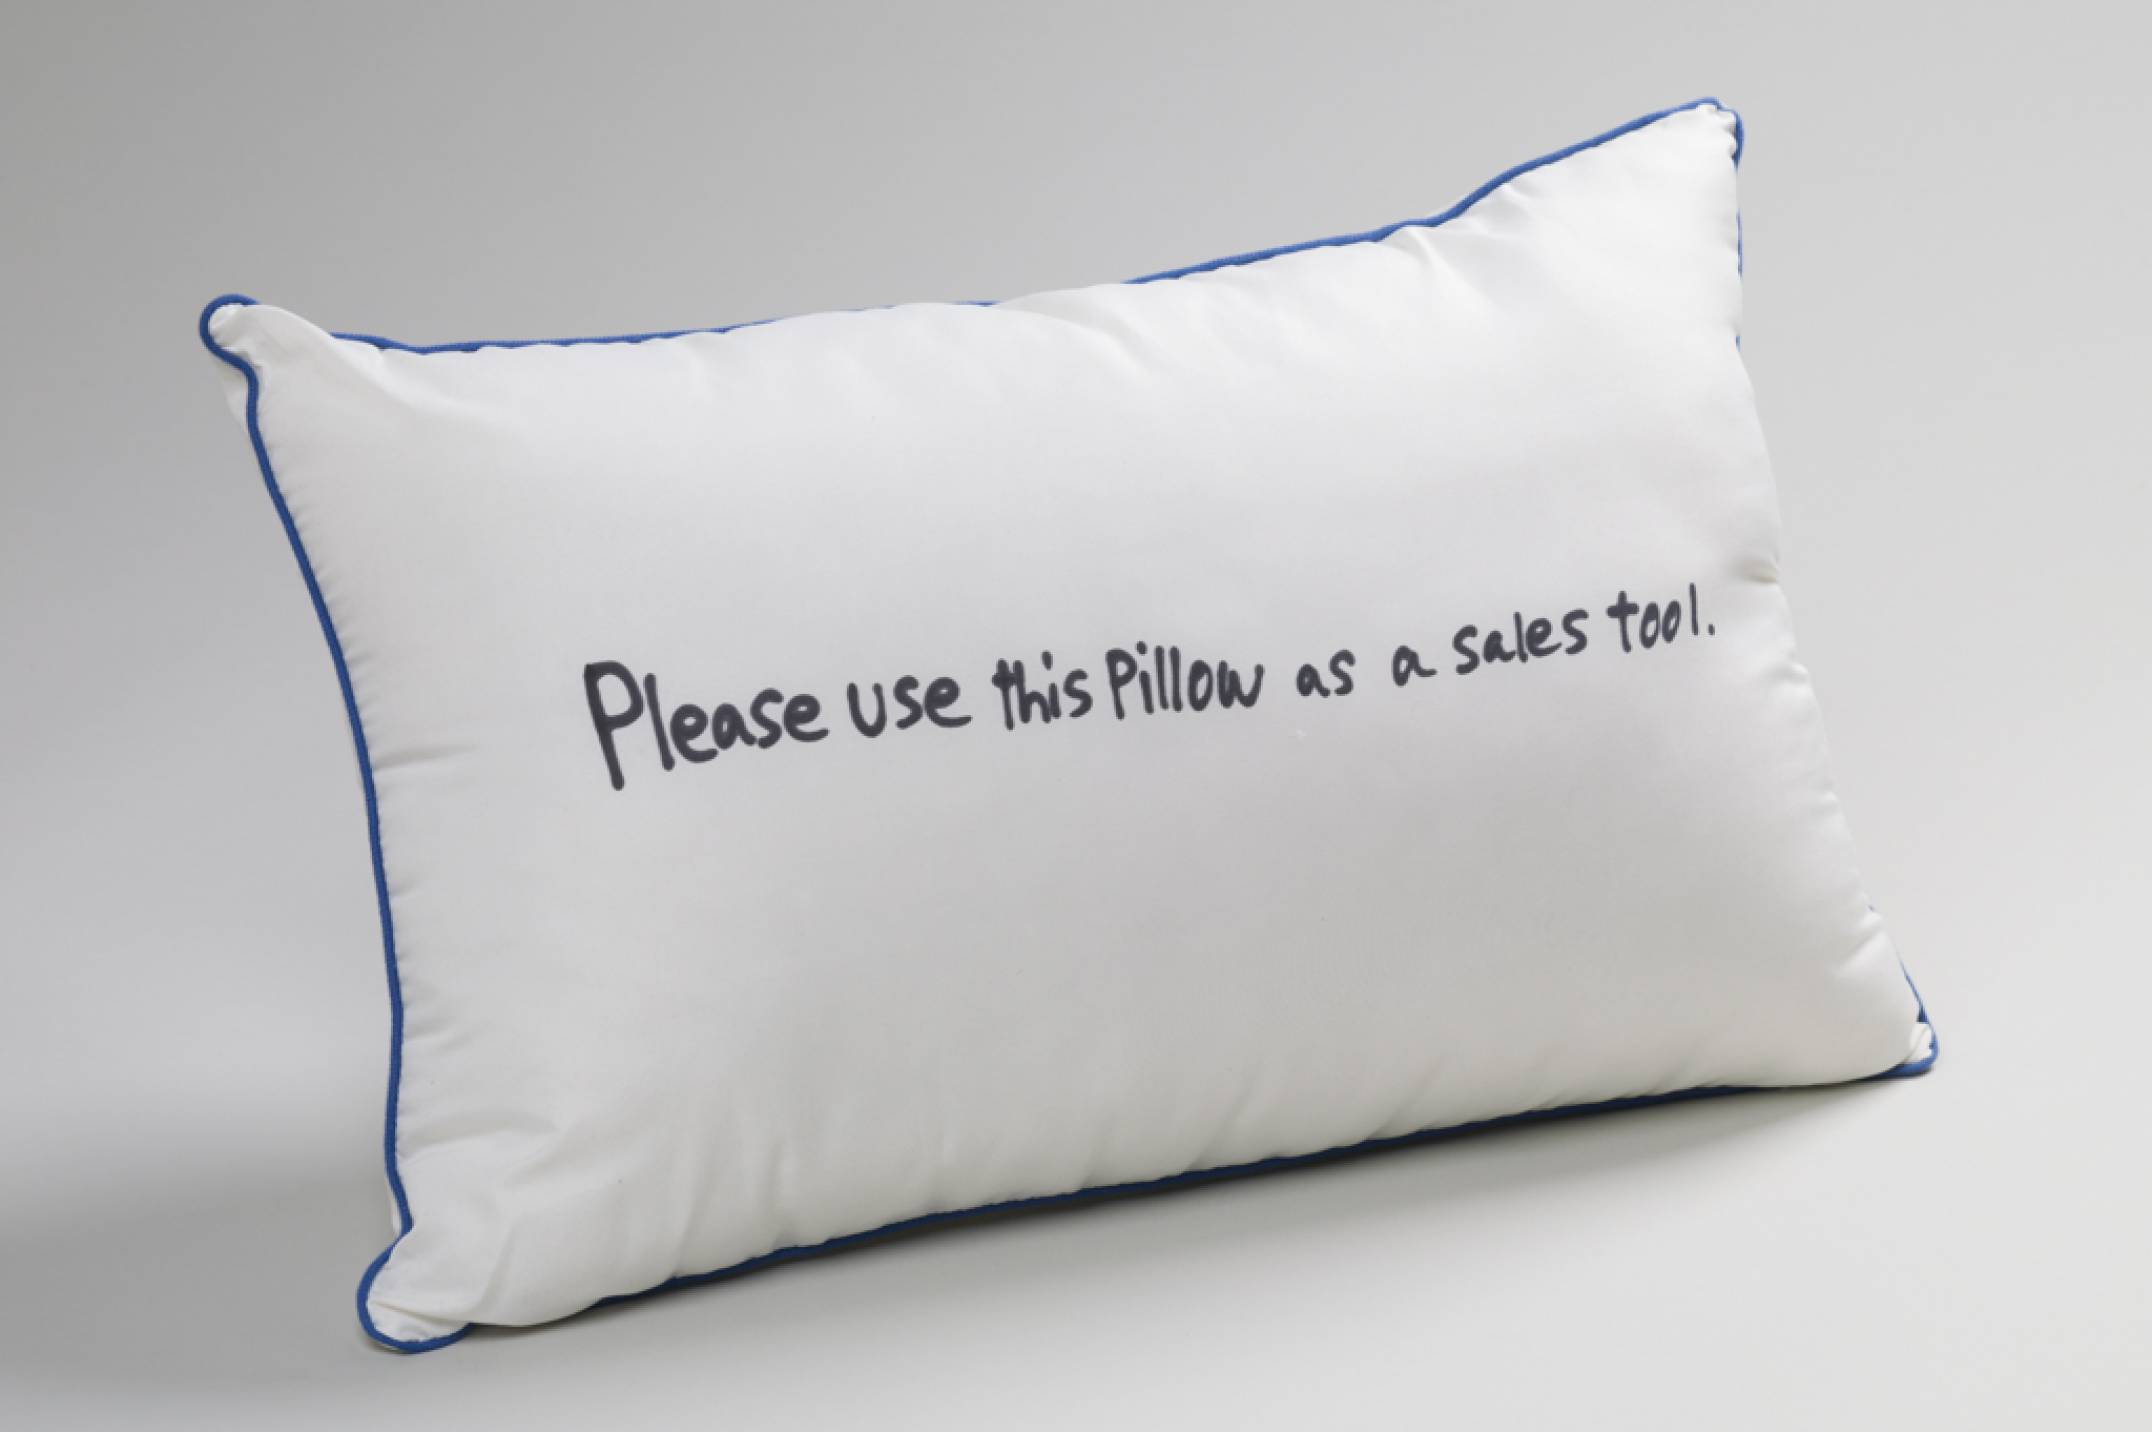 Ken Kagami, <em>Please use this pillow as a sales tool</em>, 2017, marker on pillow, 40 × 61 × 20 cm - Mendes Wood DM